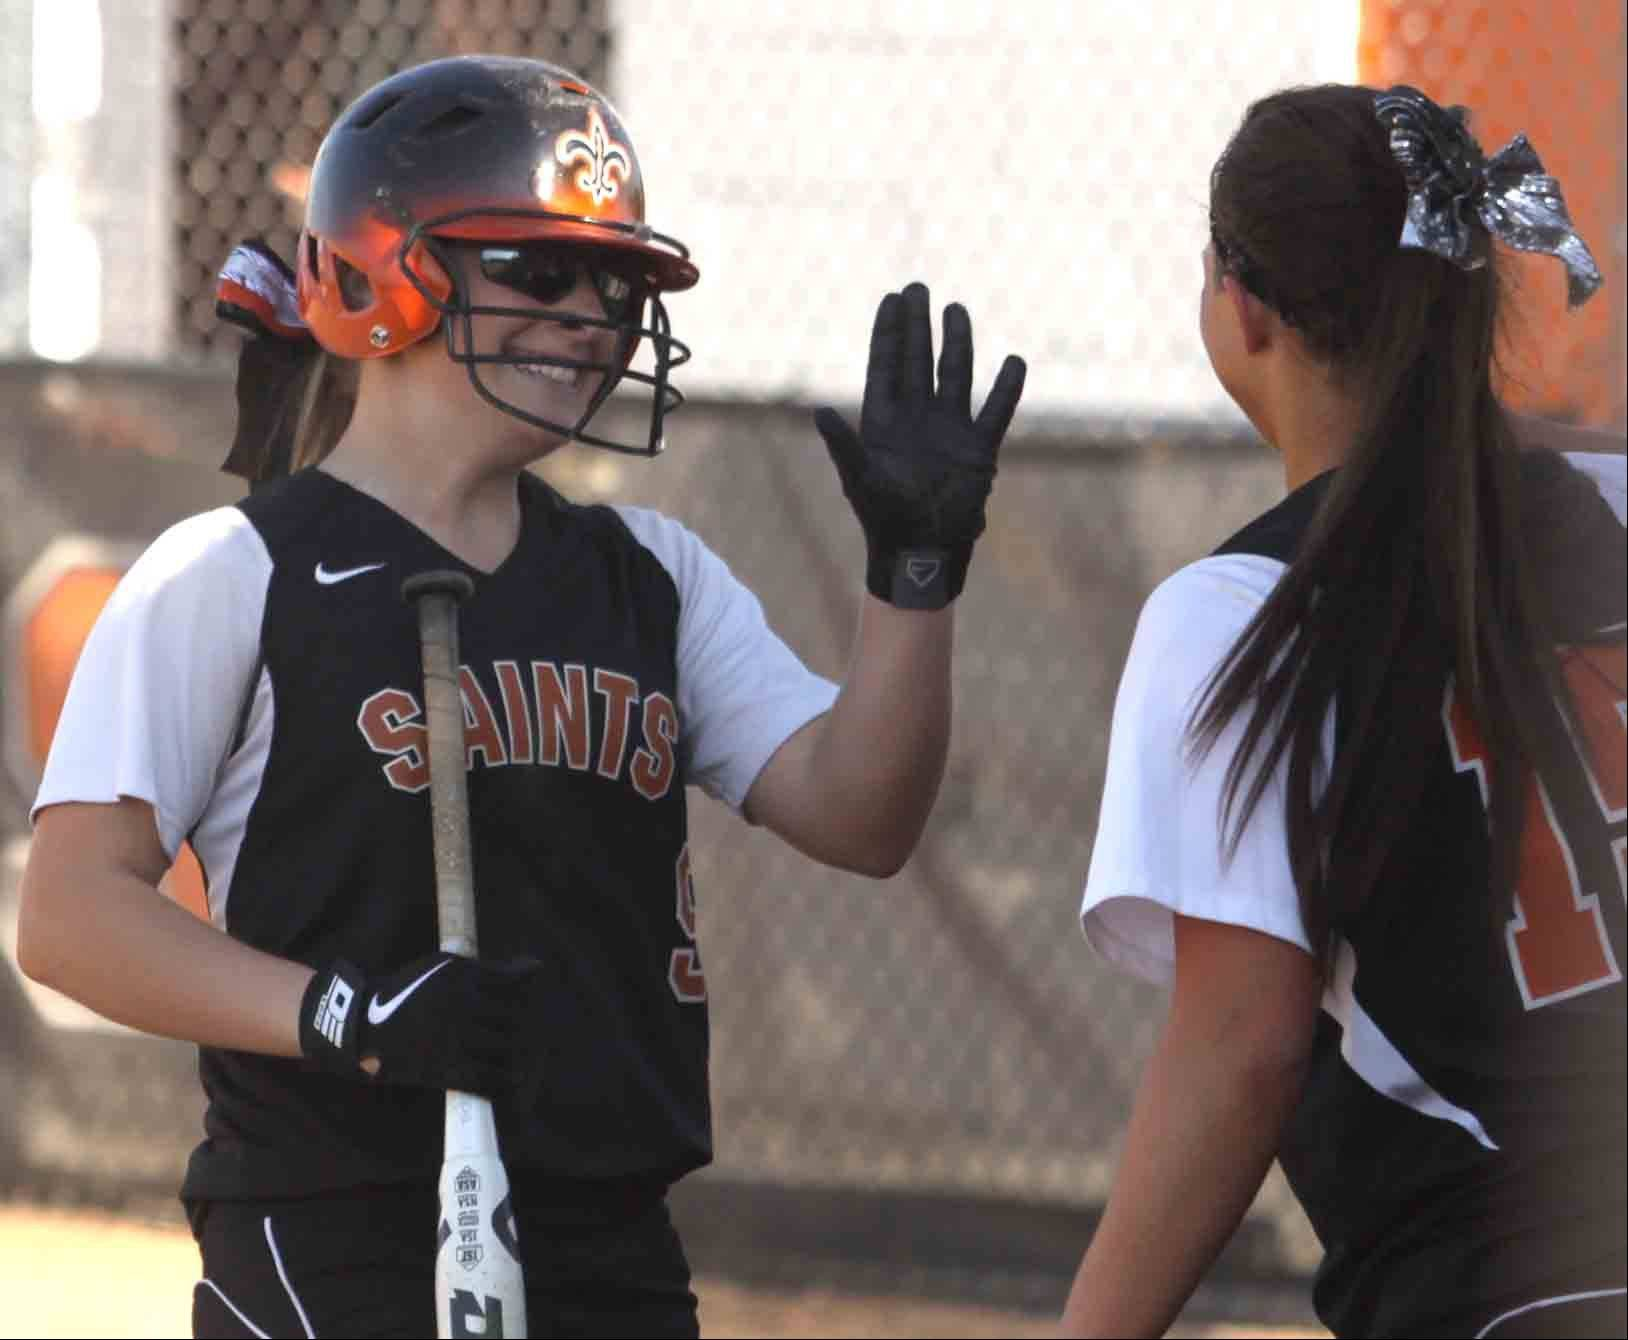 St Charles East's Sarah Collalti, left, is all smiles after coming around to score. Greeting her is teammate Alex Latoria as they played St Charles North in a varsity softball game at St Charles East on Tuesday afternoon.